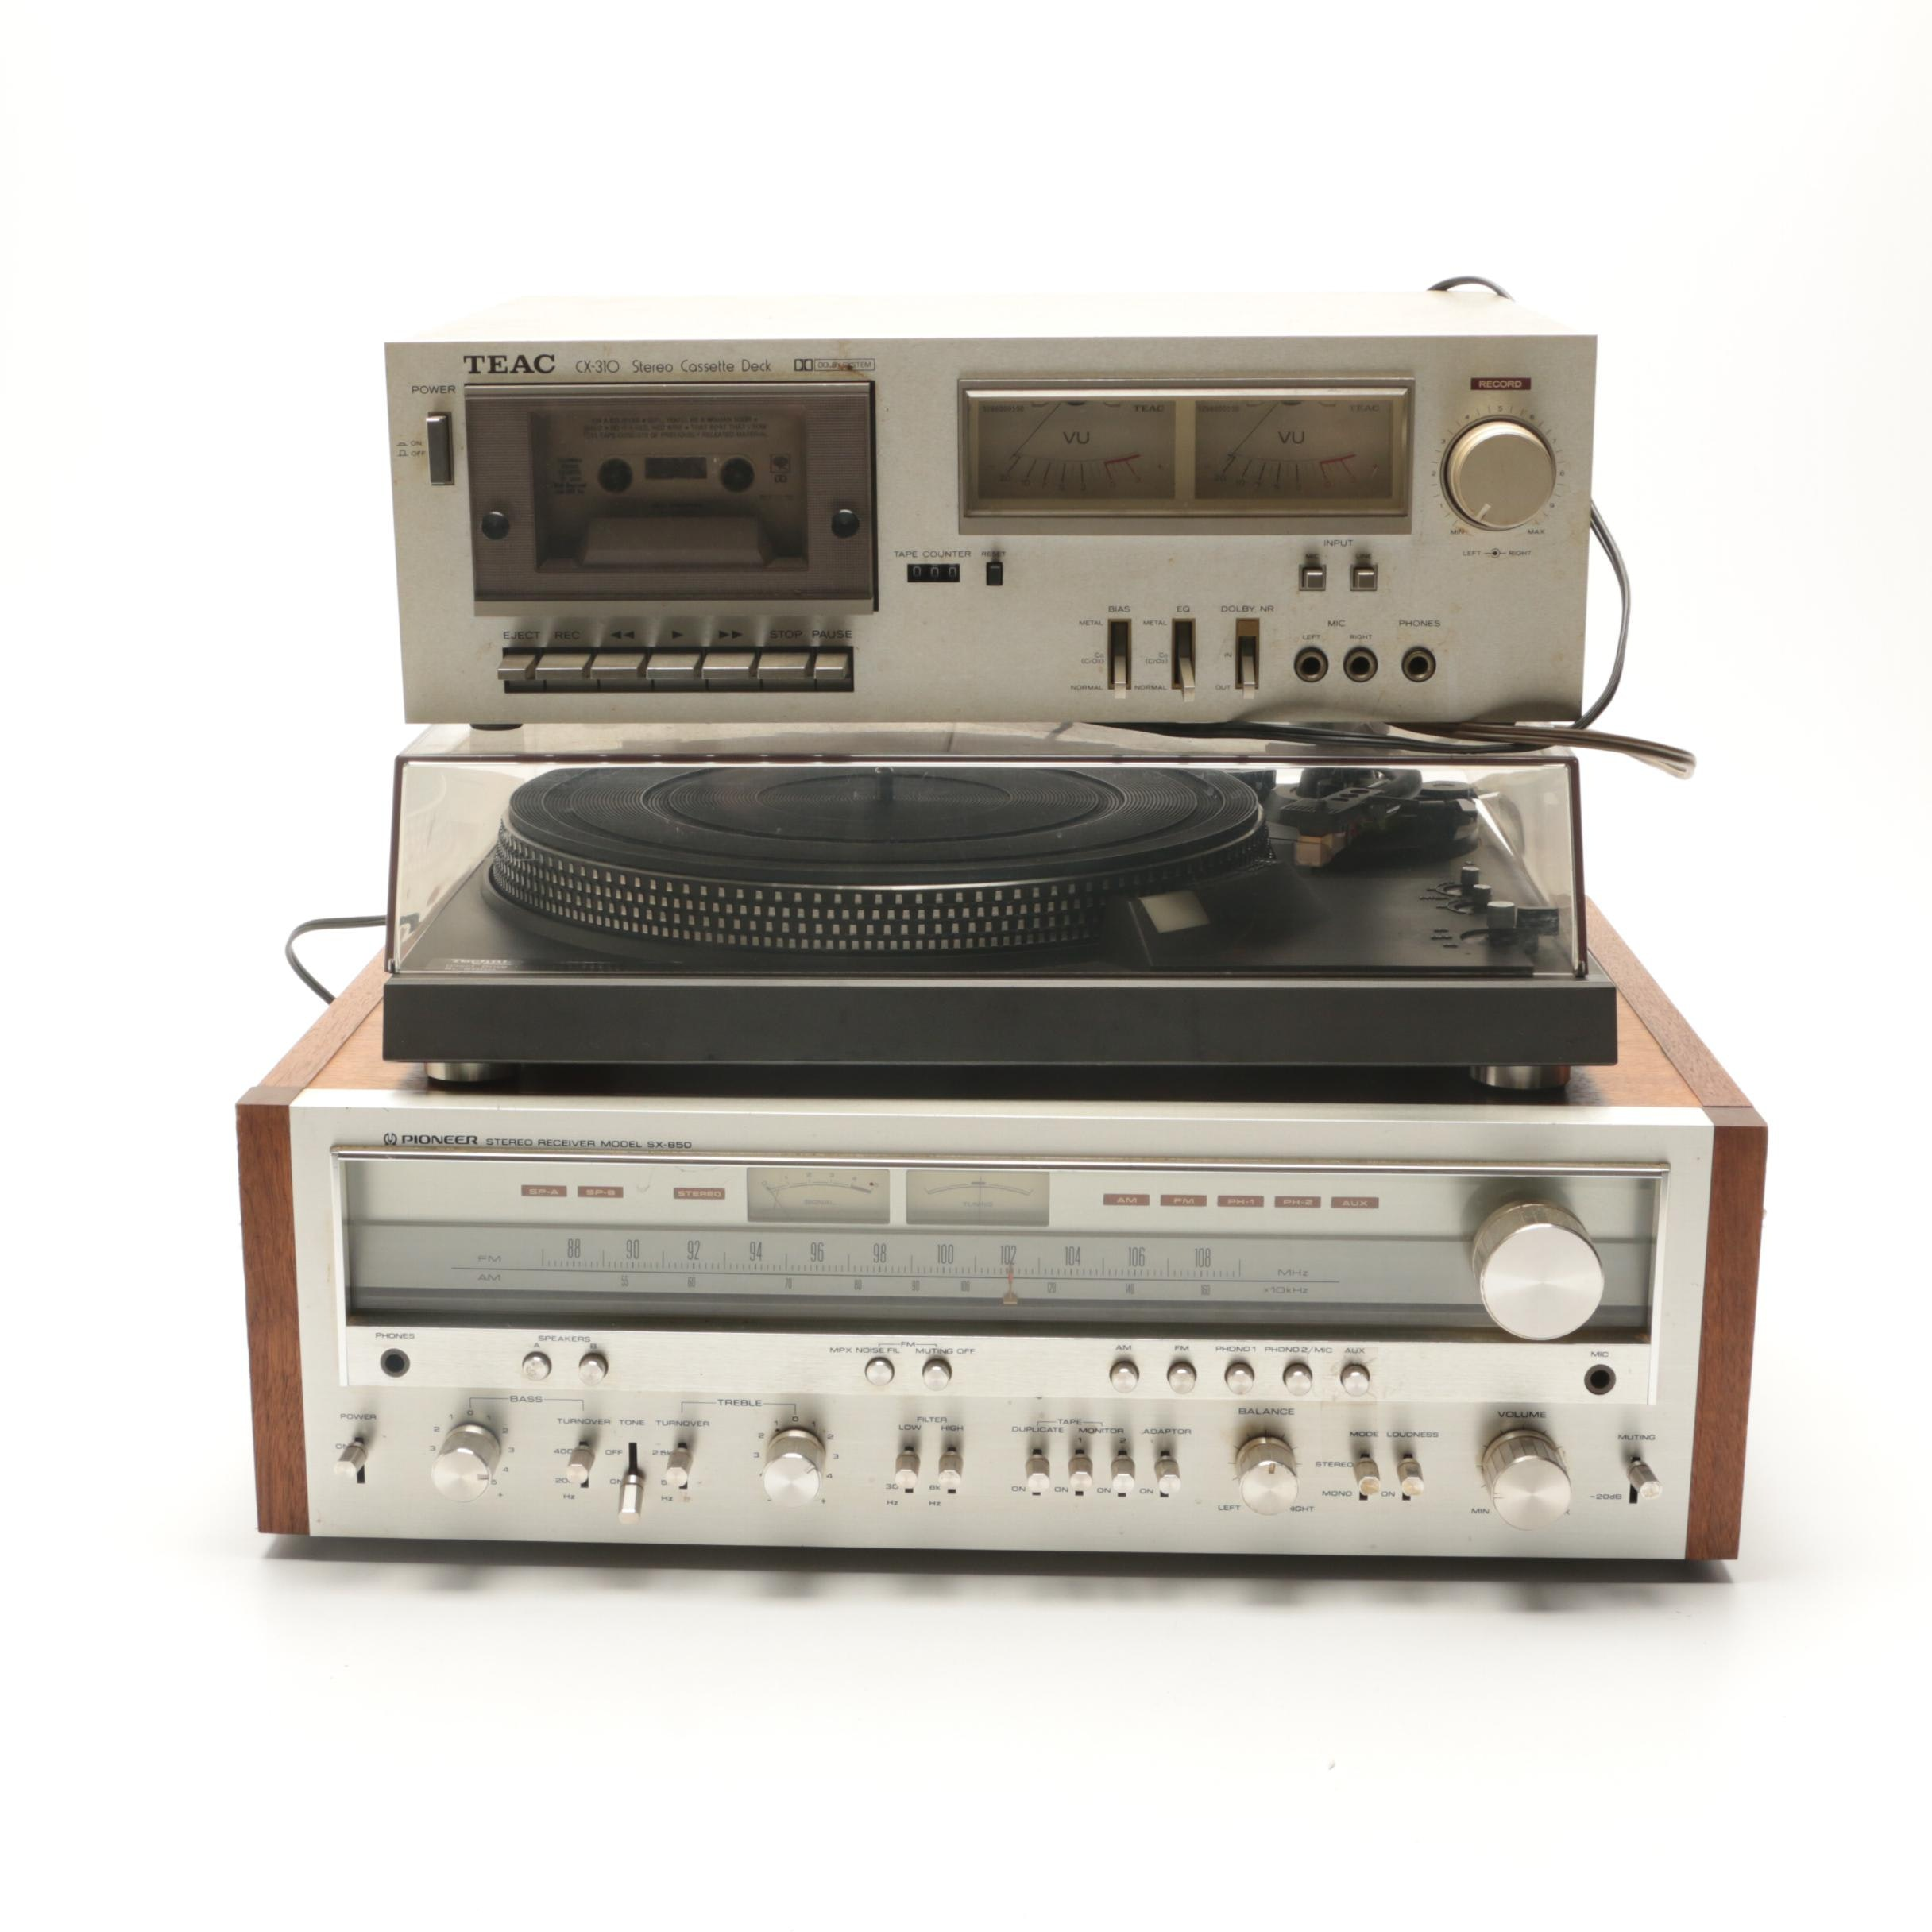 Pioneer Recever with Panasonic Turntable and TEAC Sterio Cassette Deck